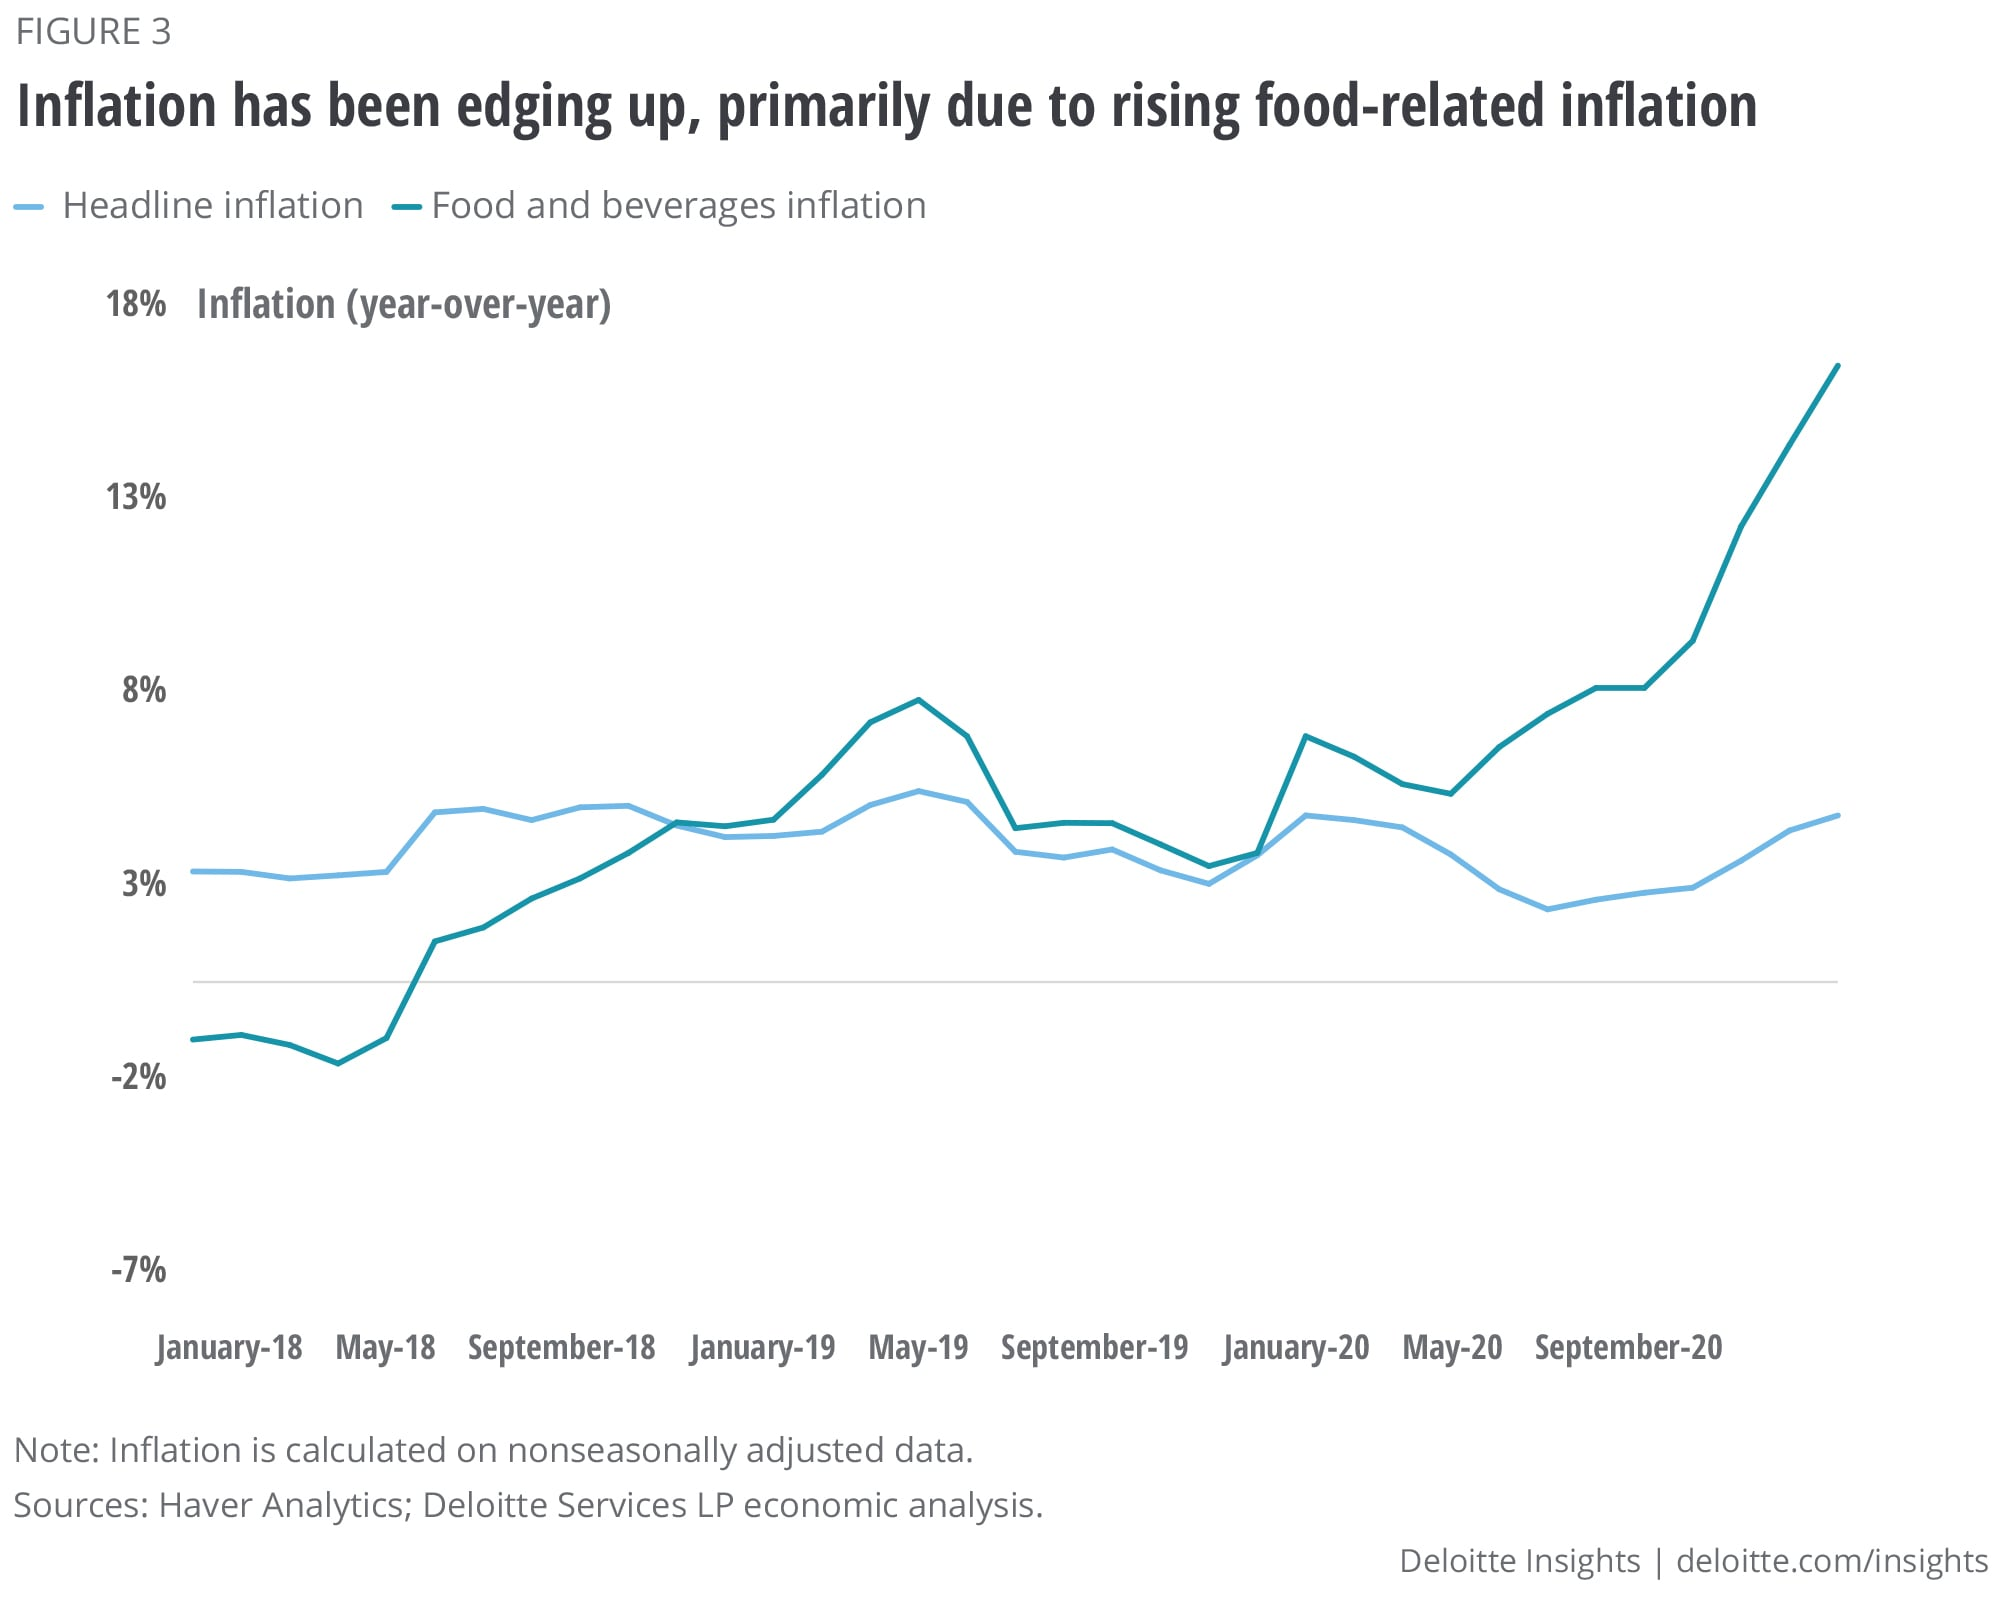 Inflation has been edging up, primarily due to rising food-related inflation